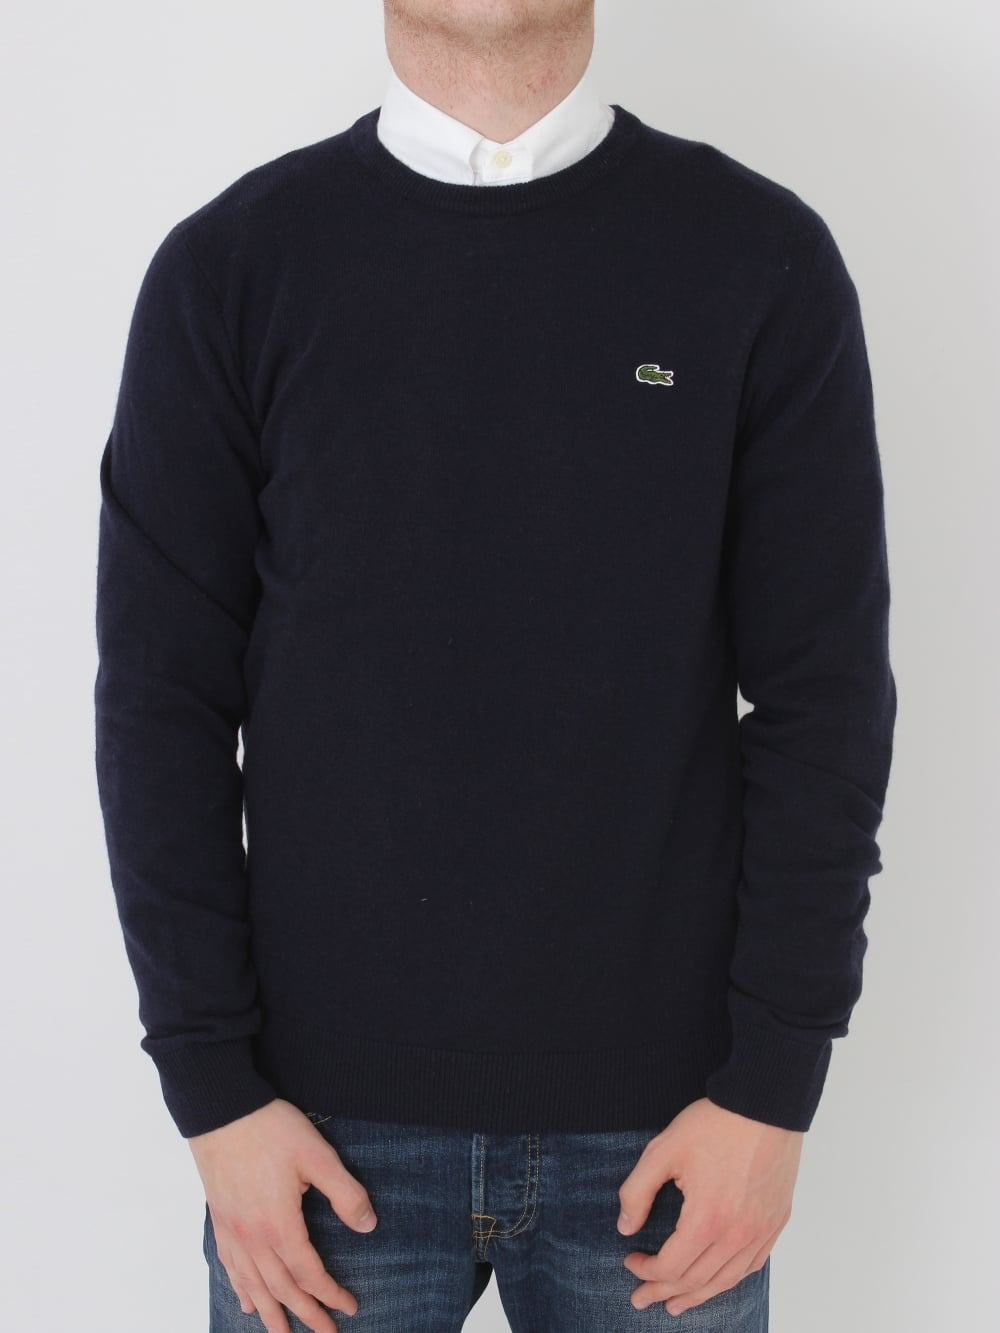 57689c0153 Lacoste Lambswool Crew Neck Knit in Navy - Northern Threads